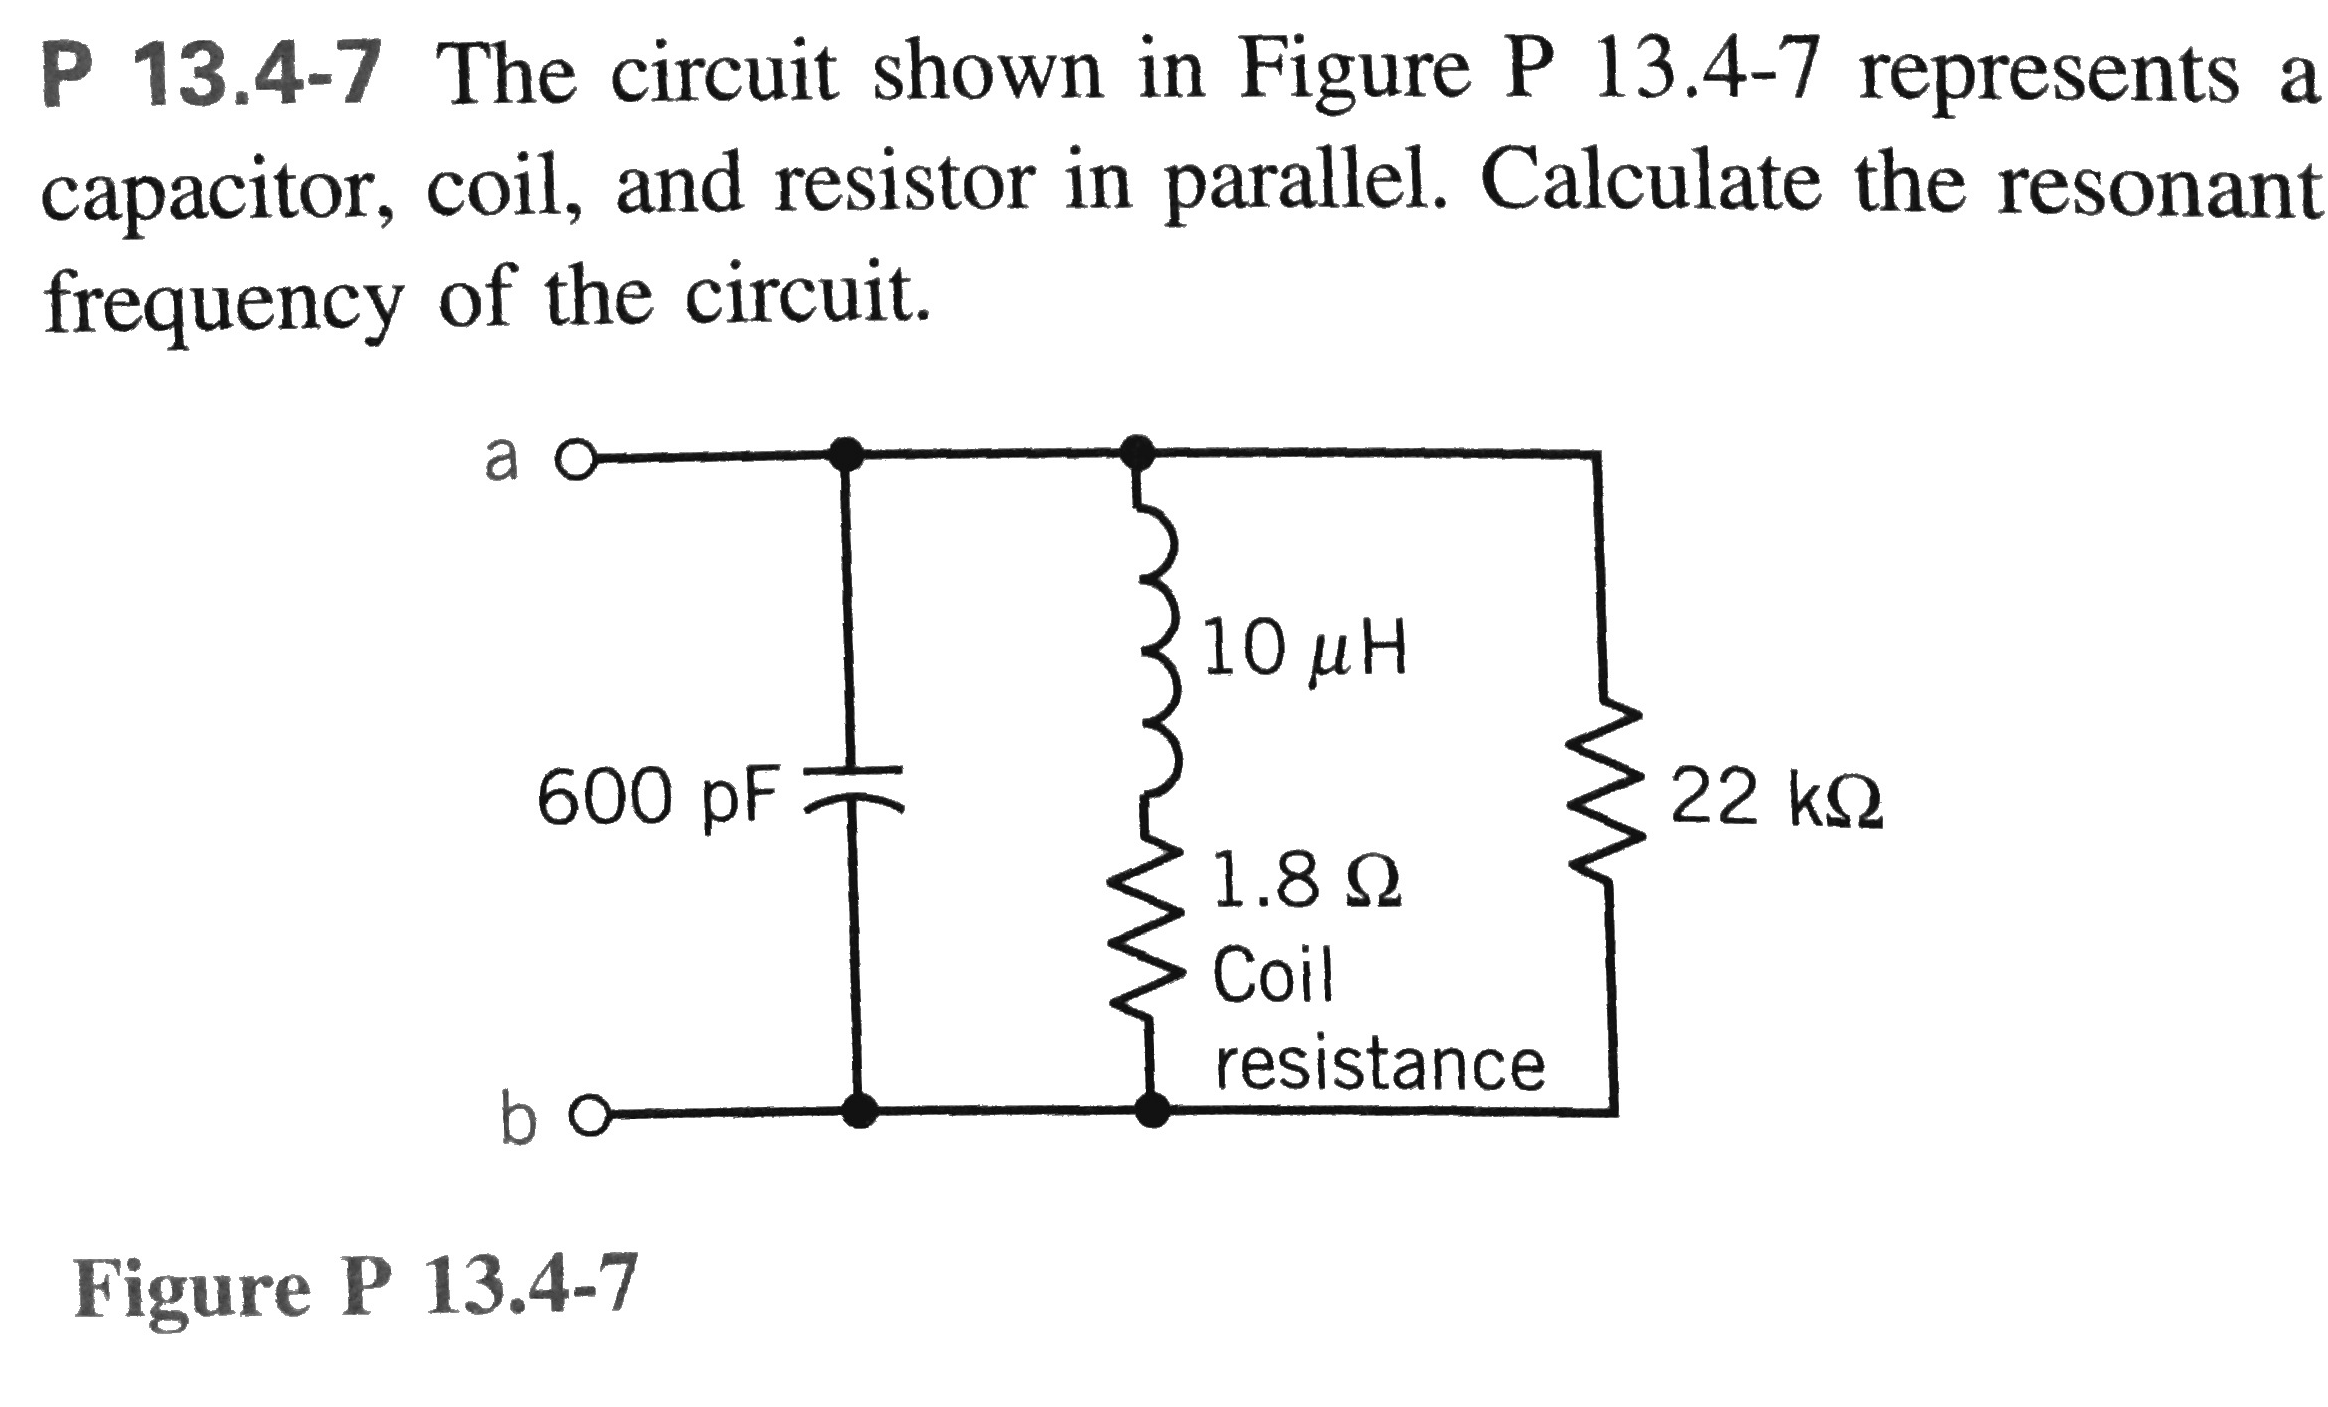 Parallel Resistor Calculator Auto Electrical Wiring Diagram Calculatorfreeledcalculadora Xtronic Free Electronic Circuits Solved The Circuit Shown In Figure P 13 4